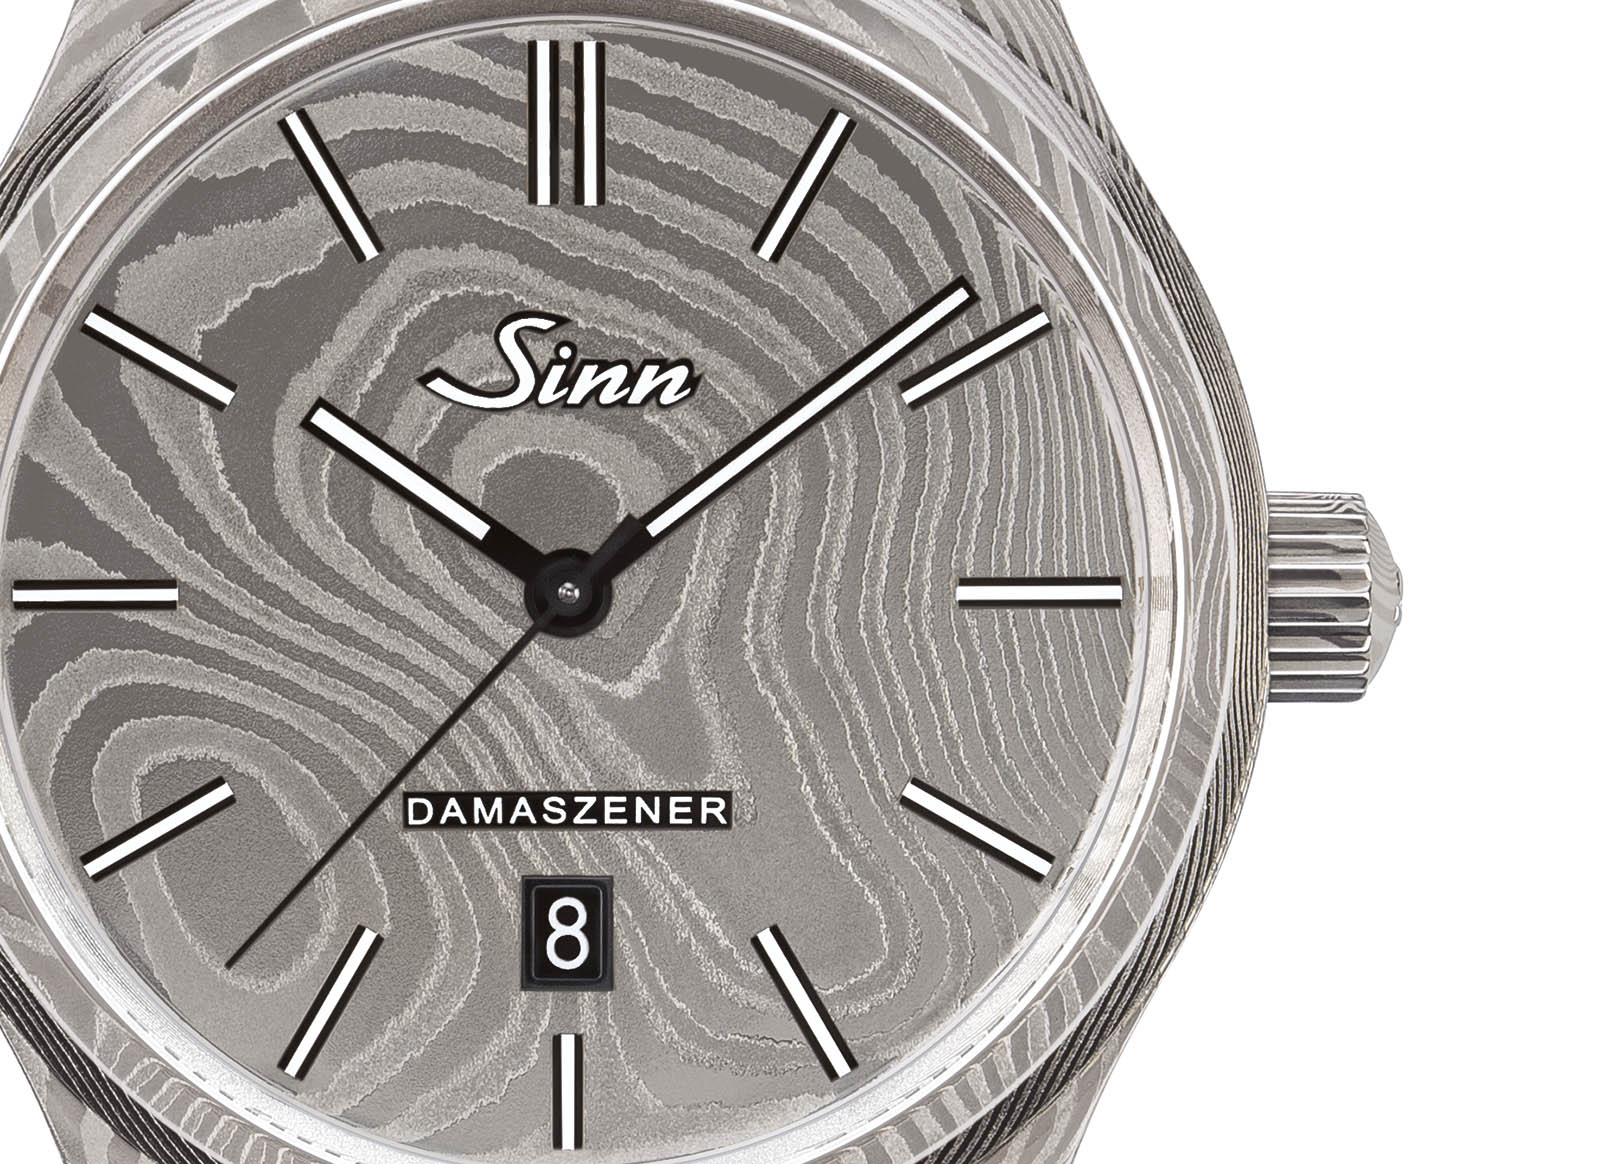 Sinn 1800 Damaszener Limited Edition 2